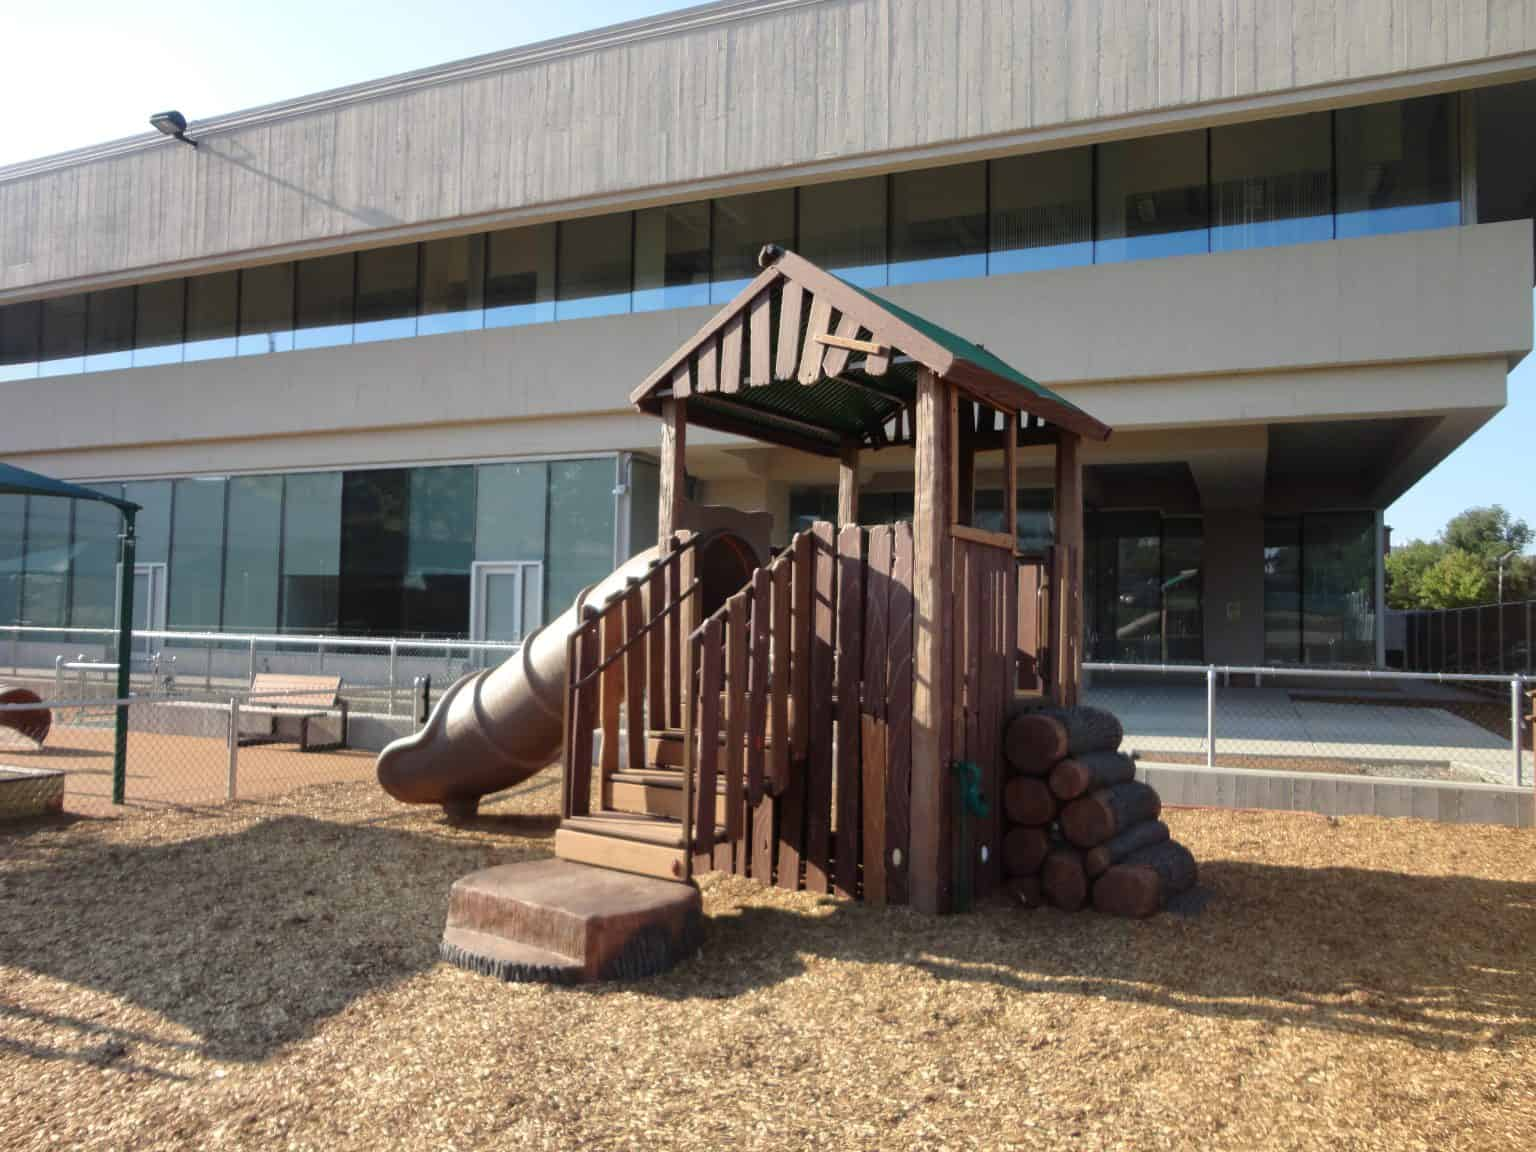 phyllis-bodel-daycare-playground-new-haven-ct_17939689118_o-1536x1152